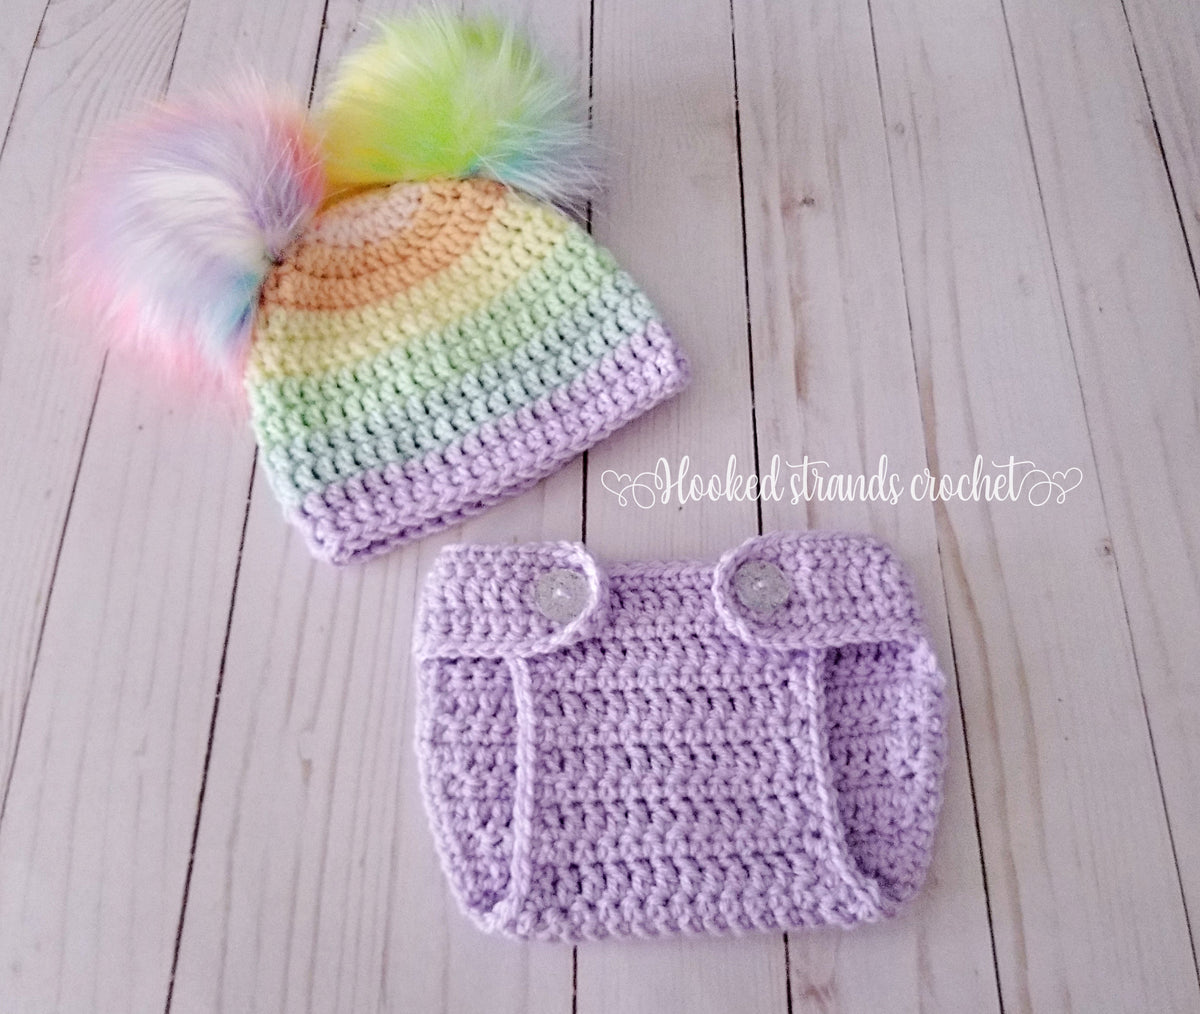 a5e011939 Hat and diaper cover sets – Hooked strands crochet